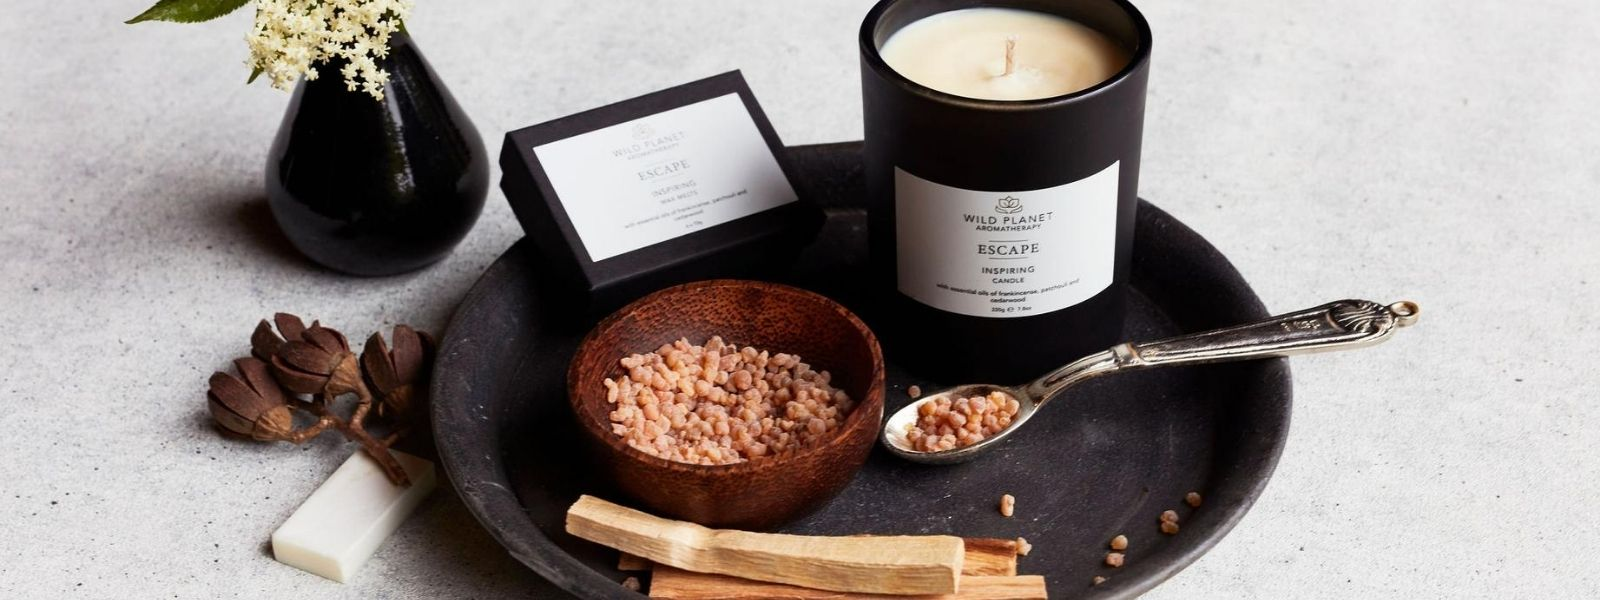 Escape Candle and box of wax melts by Wild Planet Aromatherapy on grey tray next to palo santo sticks and bowl of natural resin